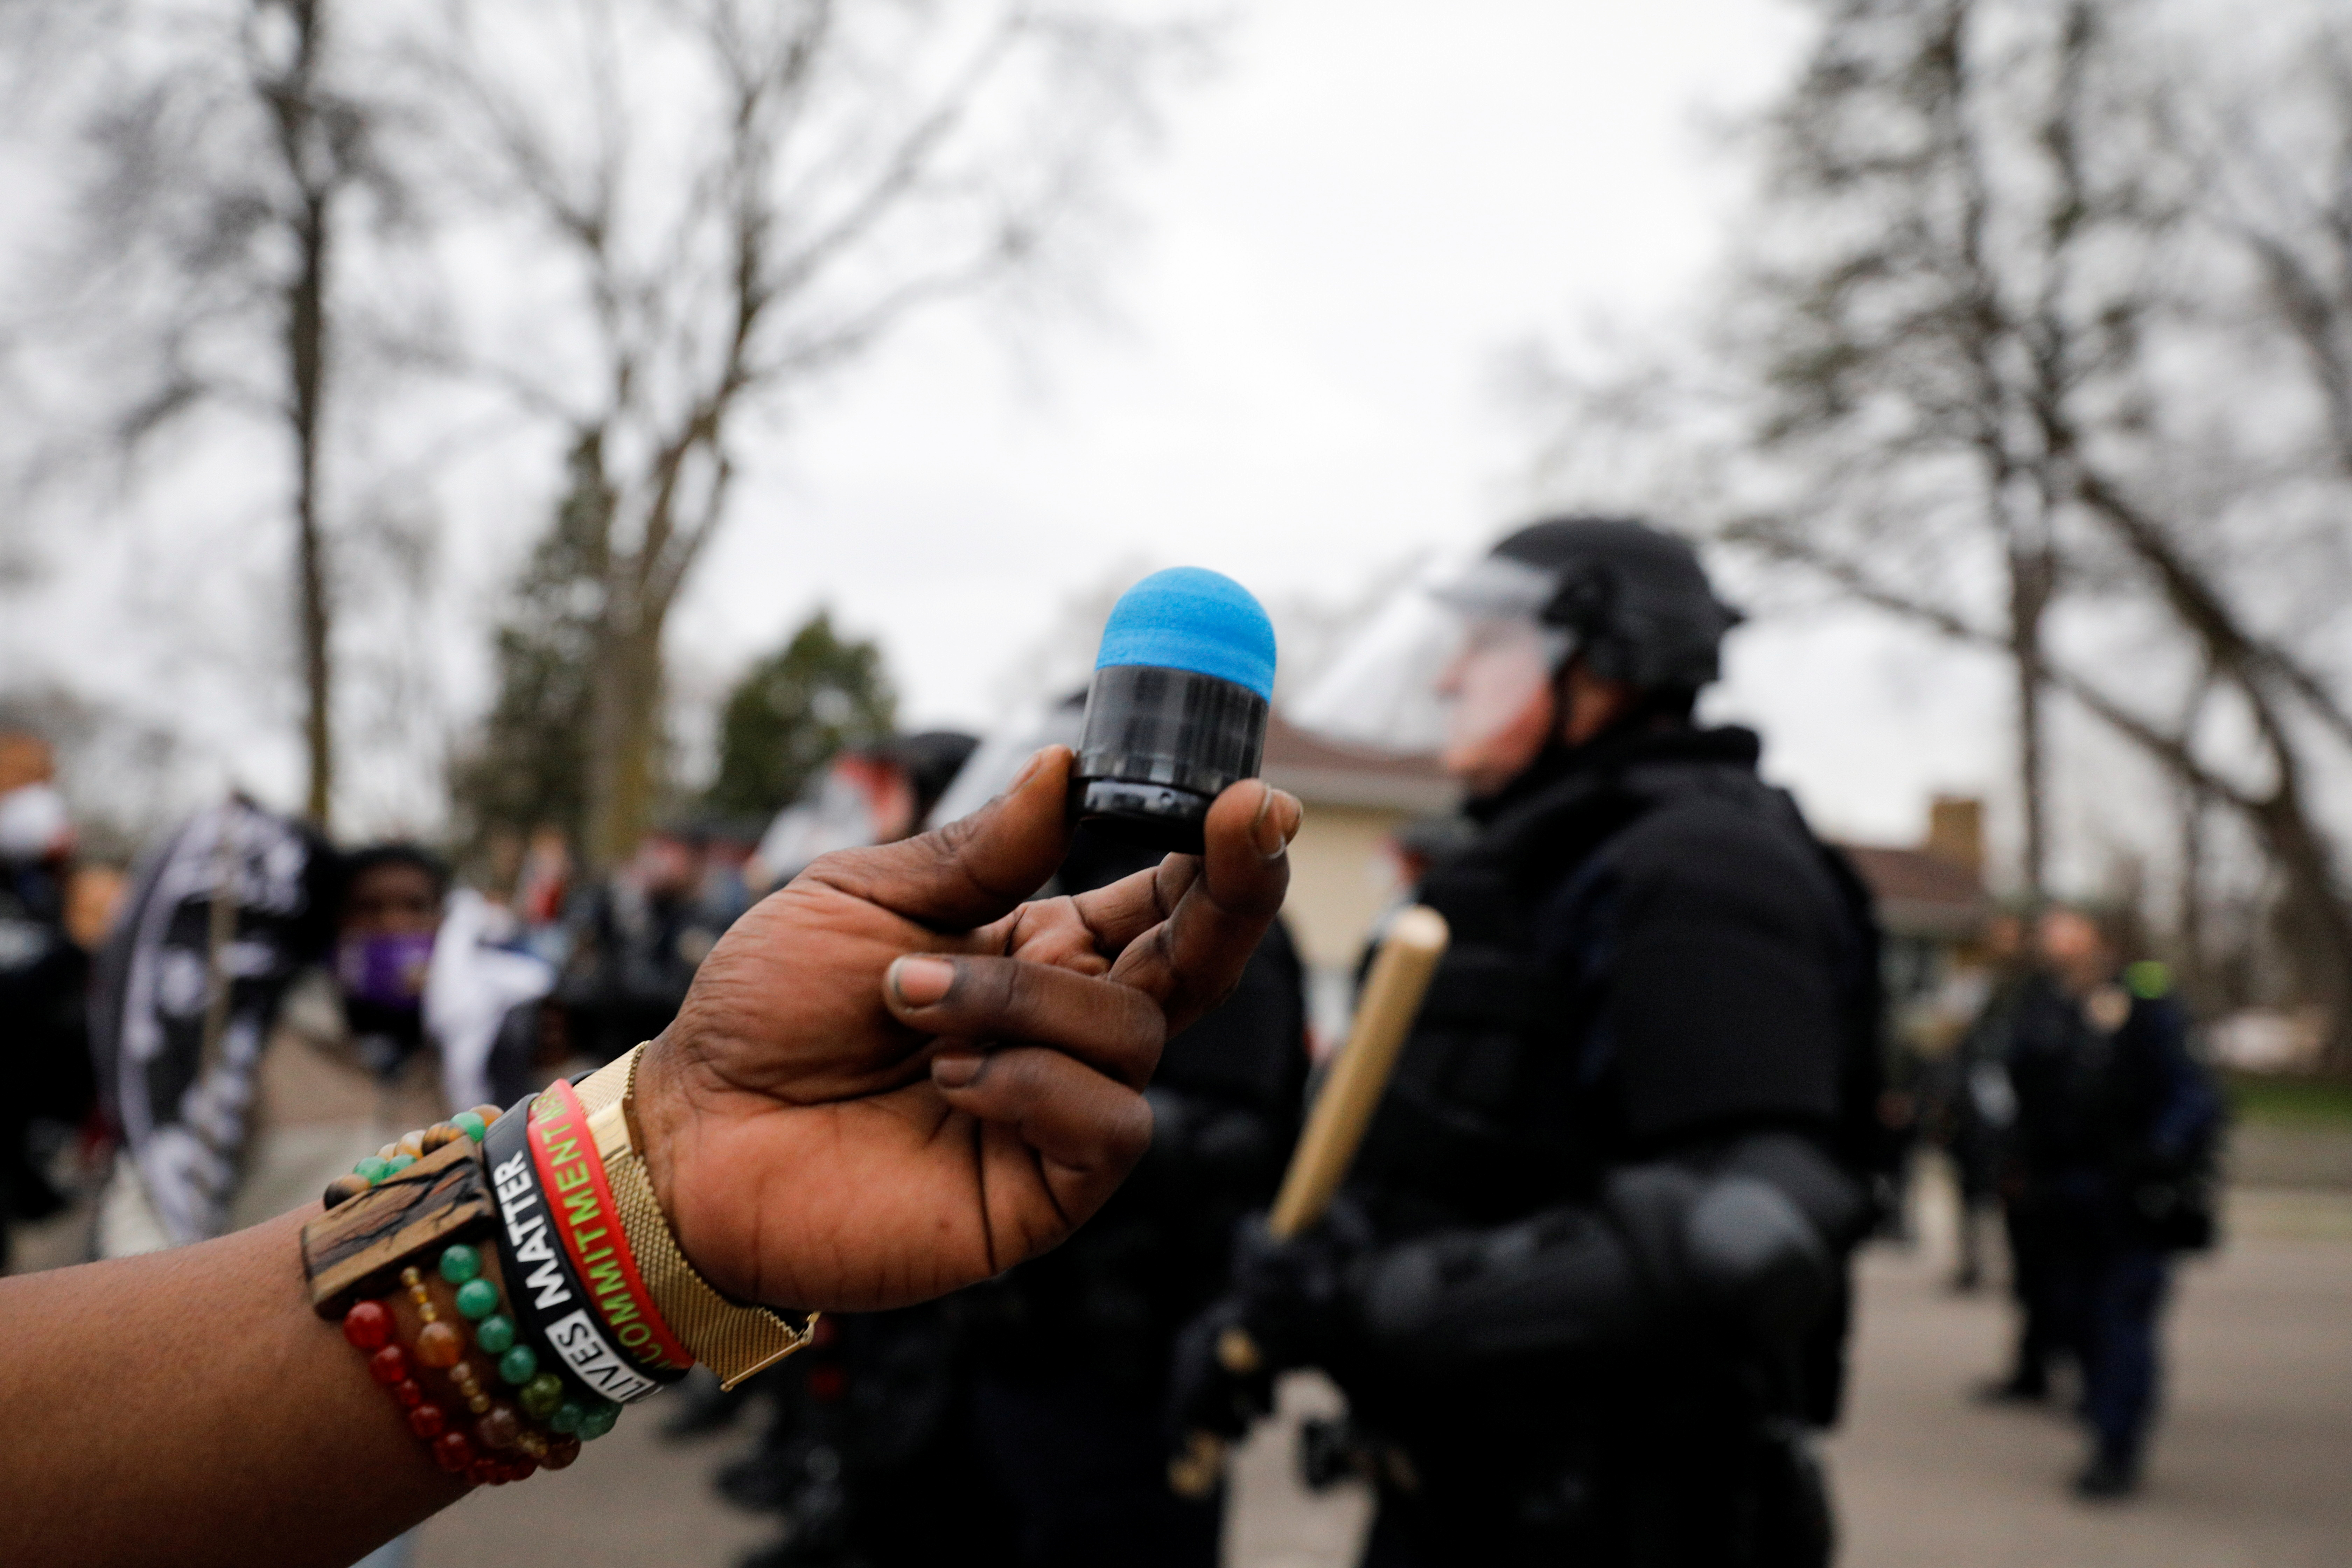 Cortez Rice holds up the rubber bullet that hit him in his side during a confrontation with police after police allegedly shot and killed a man, who local media report is identified by the victim's mother as Daunte Wright, in Brooklyn Center, Minnesota, U.S., April 11, 2021. REUTERS/Nick Pfosi